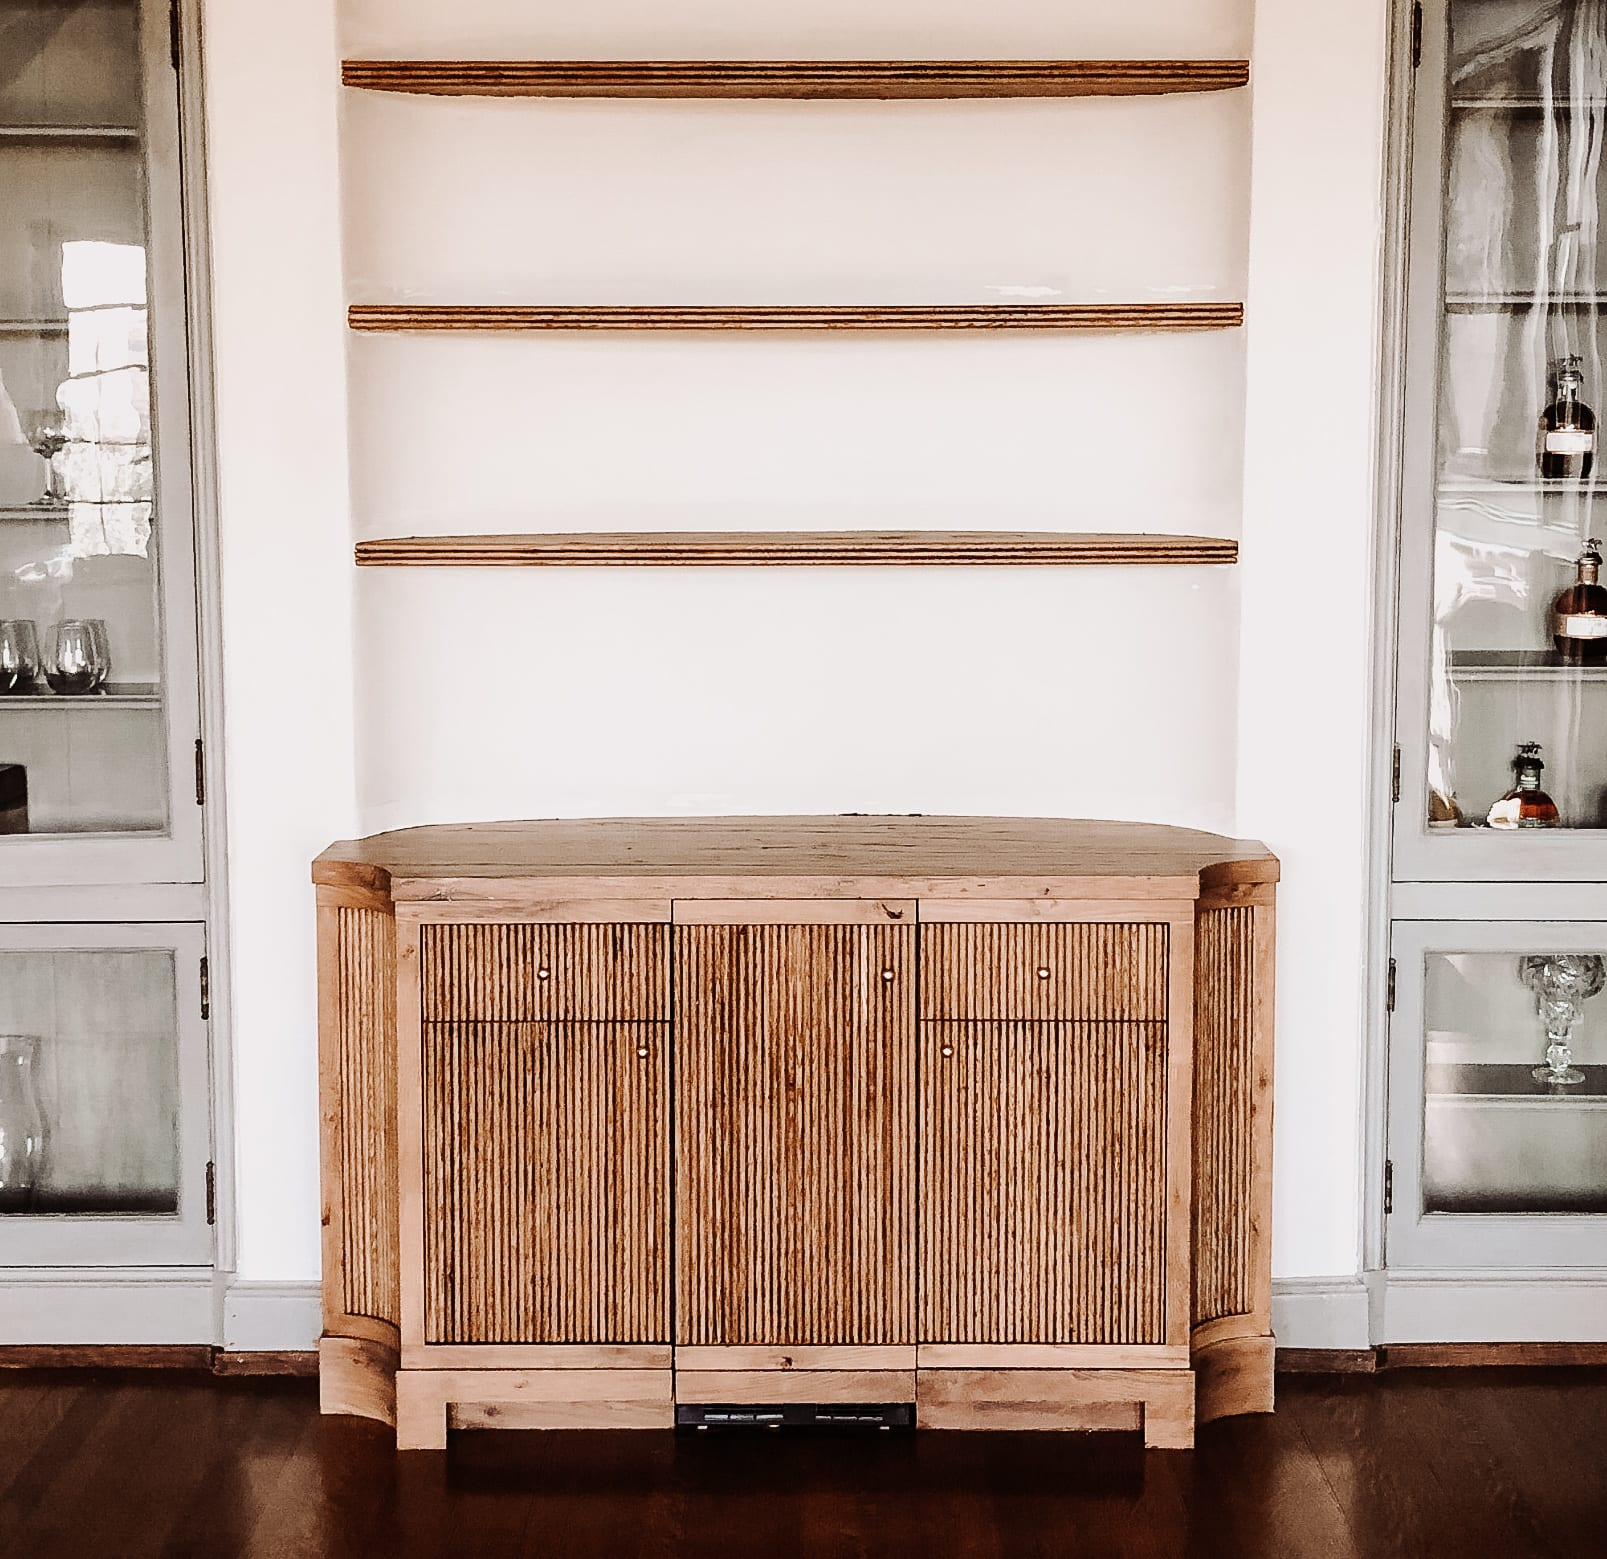 Beautiful antique white oak bar cabinets with matching shelves